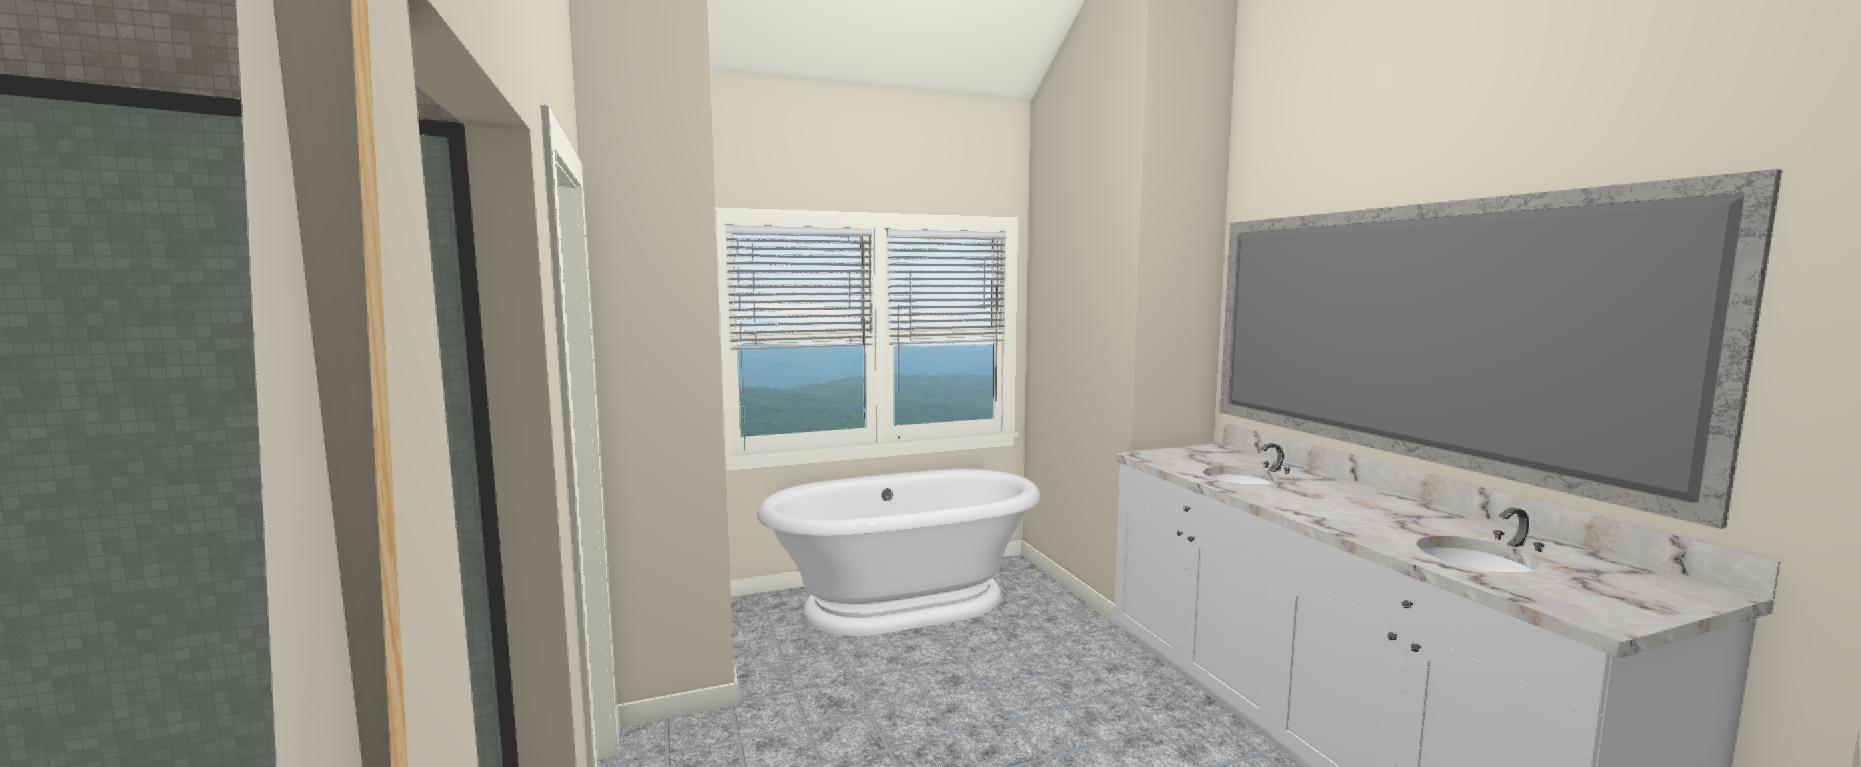 Brian and Shana 3D Bath view 2